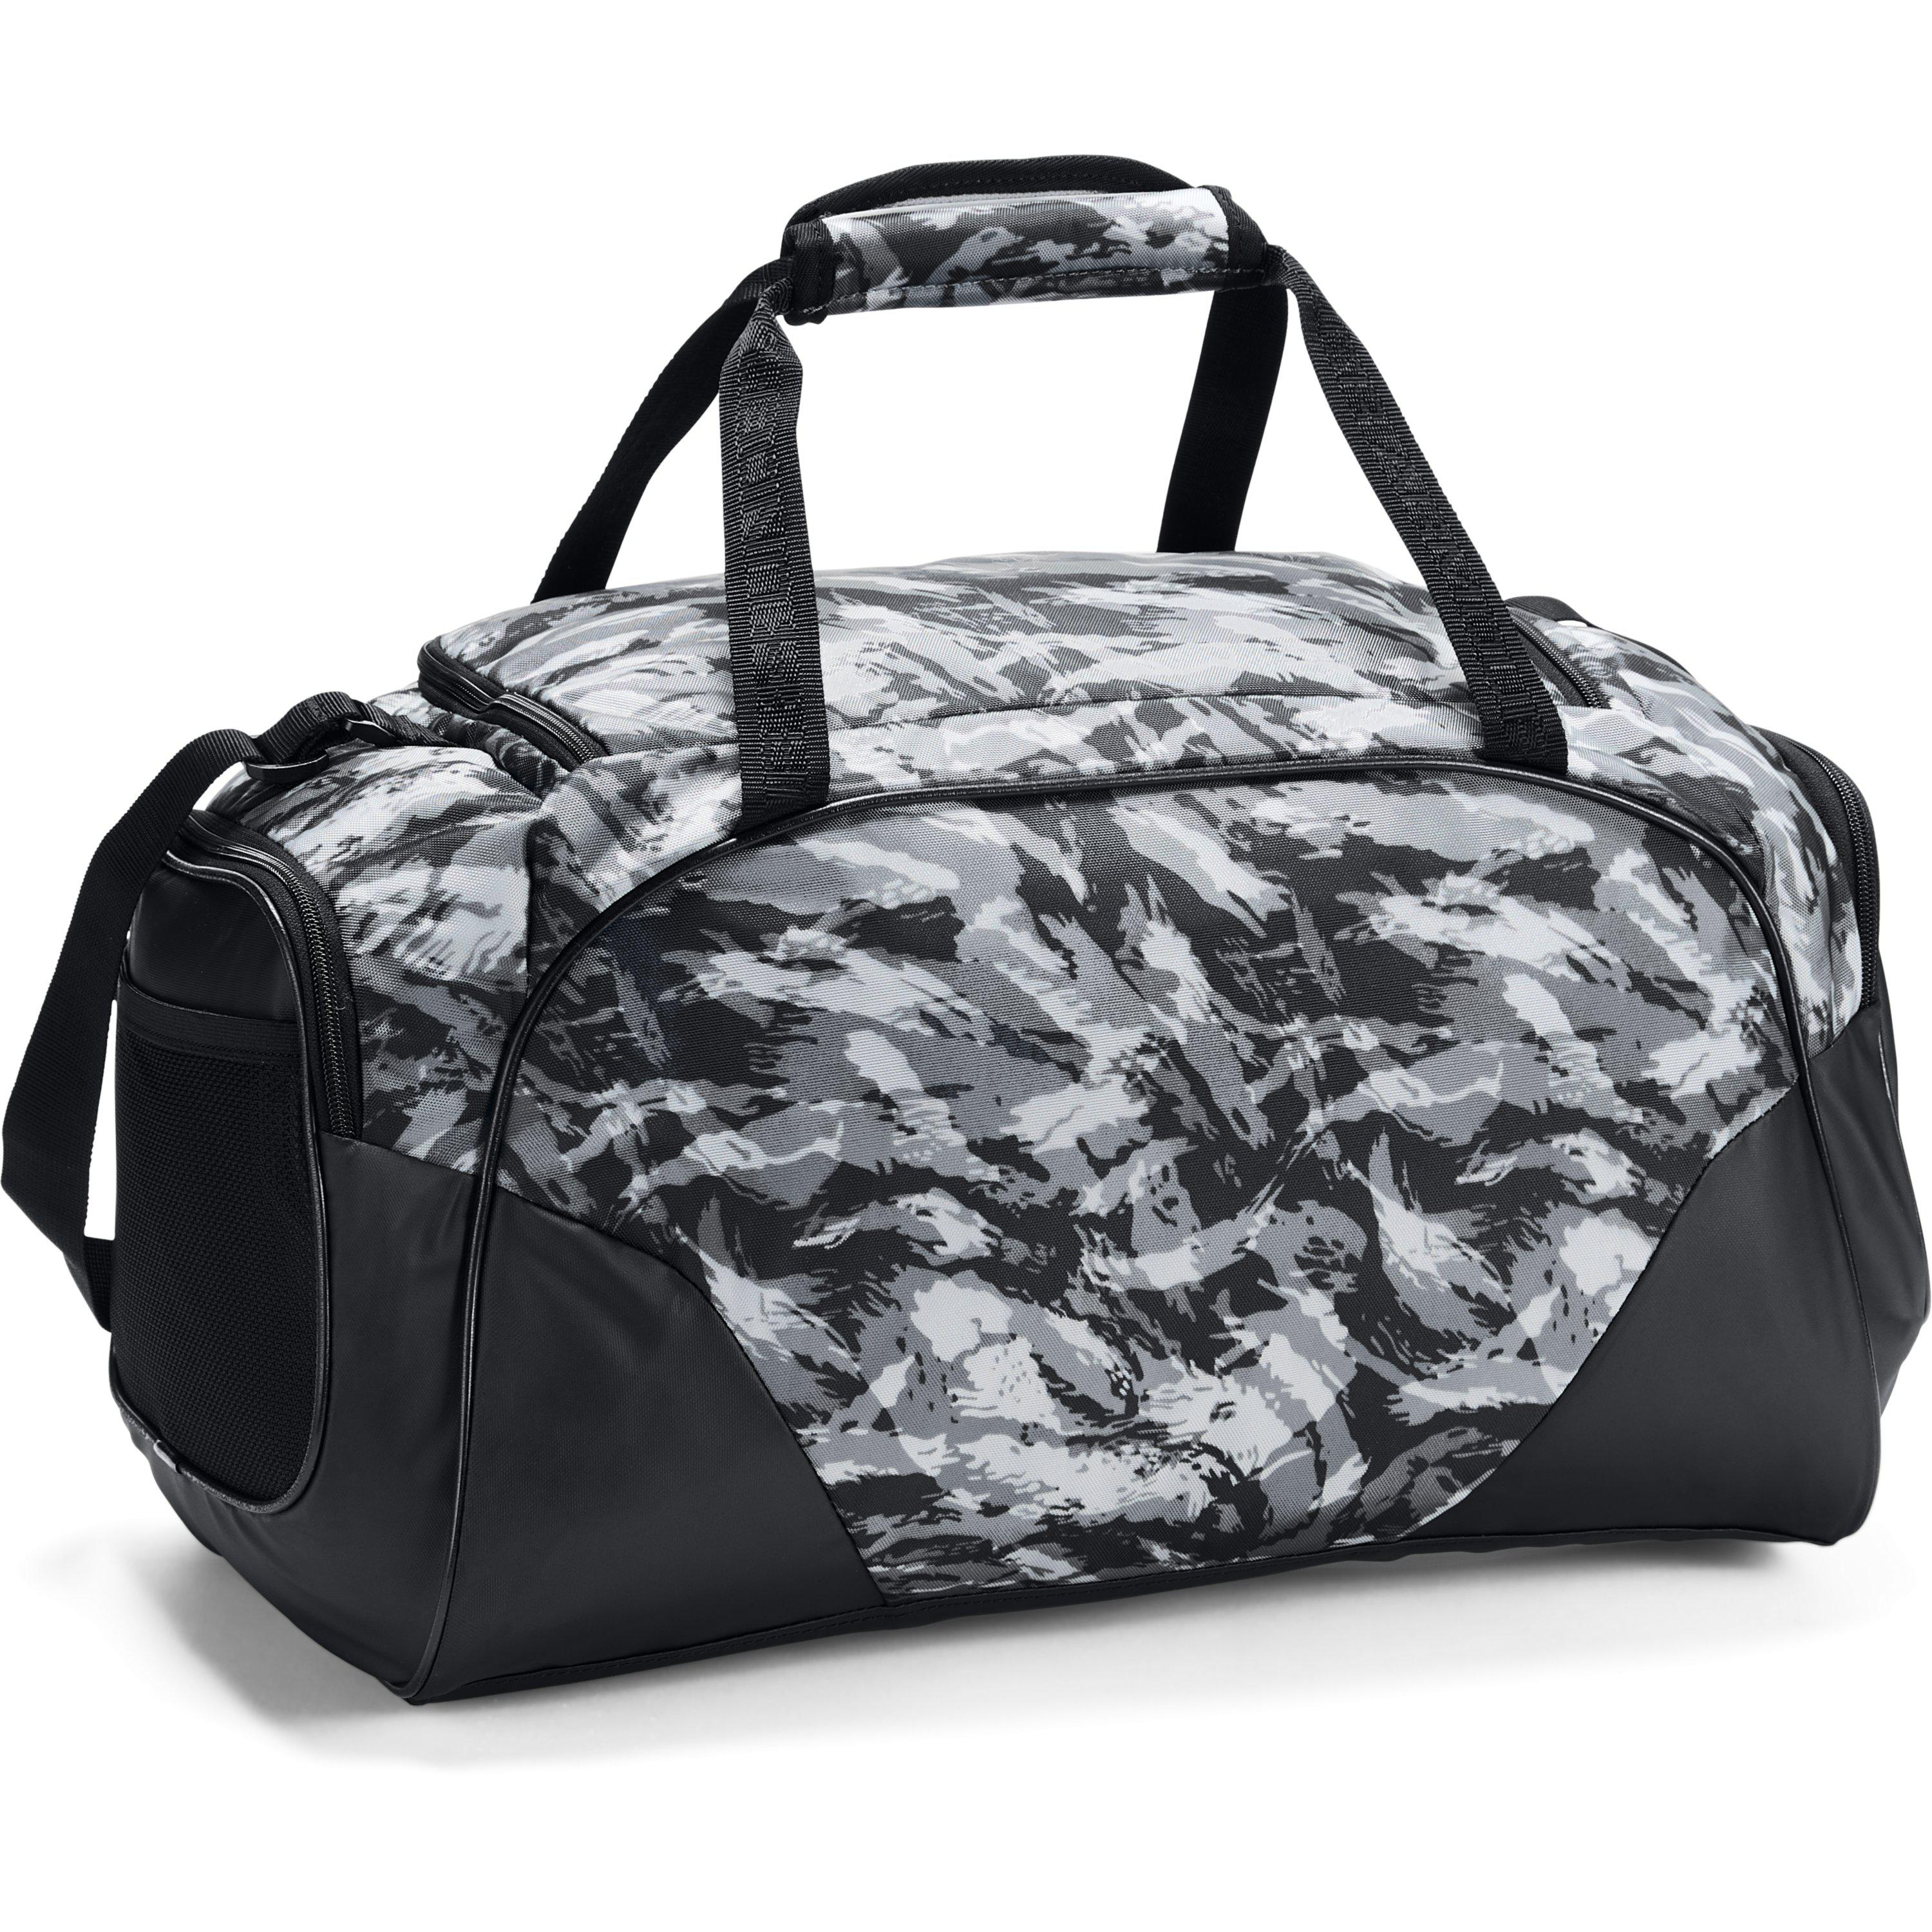 Lyst - Under Armour Undeniable 3.0 Small Duffle Bag in Black for Men 23e84a6f41895